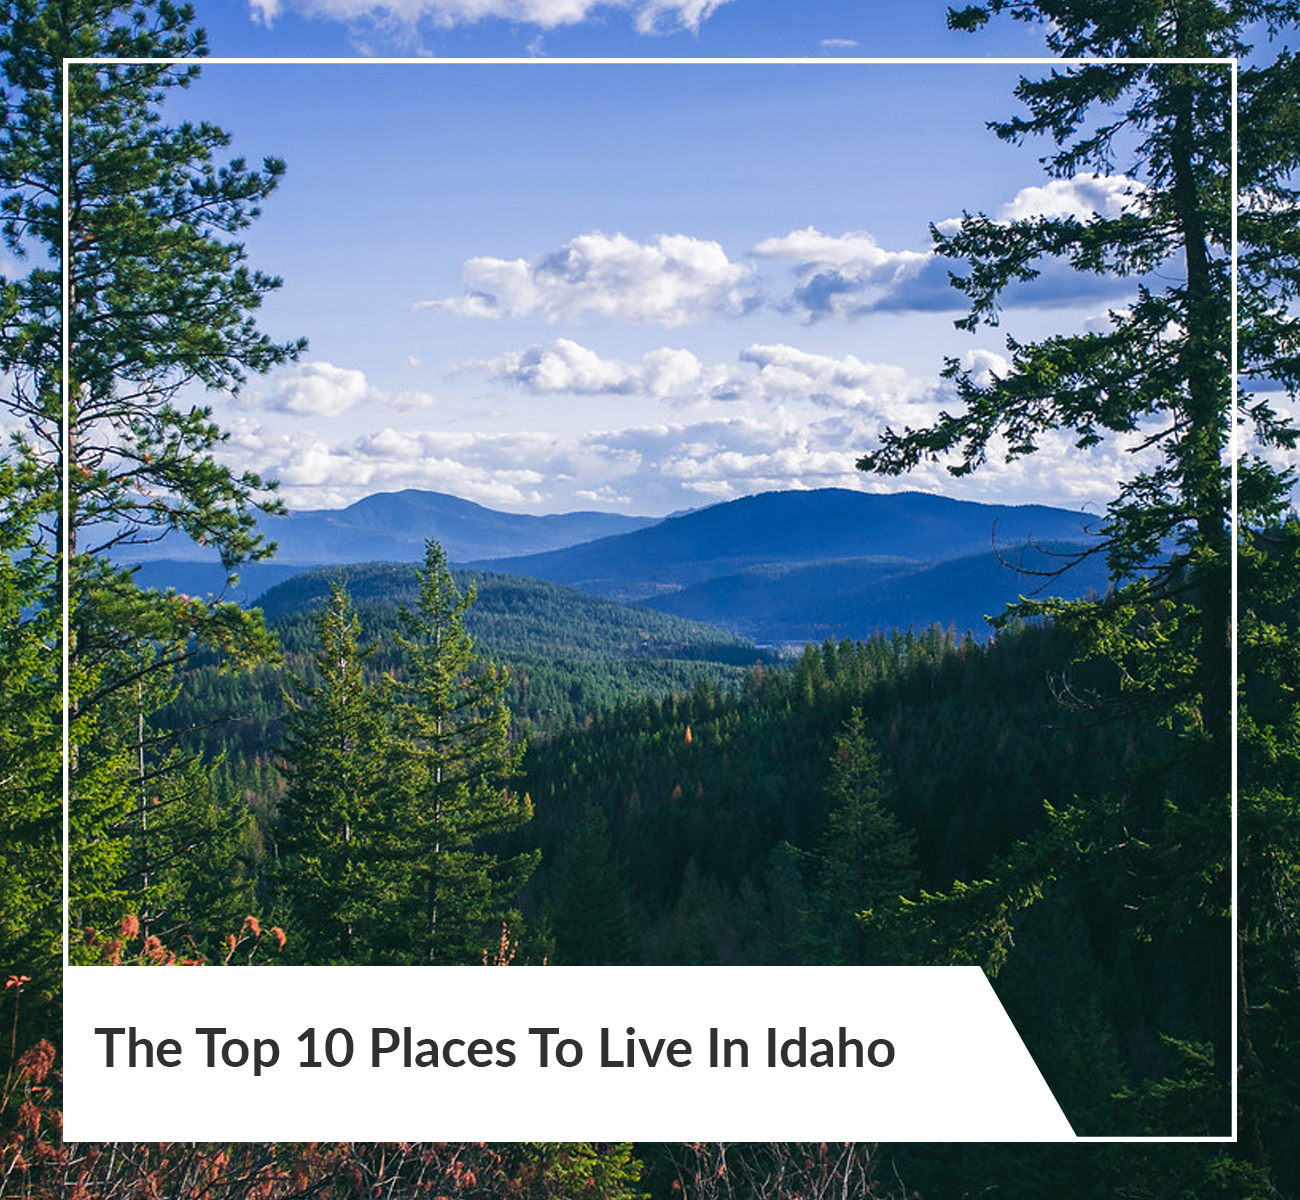 The Top 10 Places To Live in Idaho